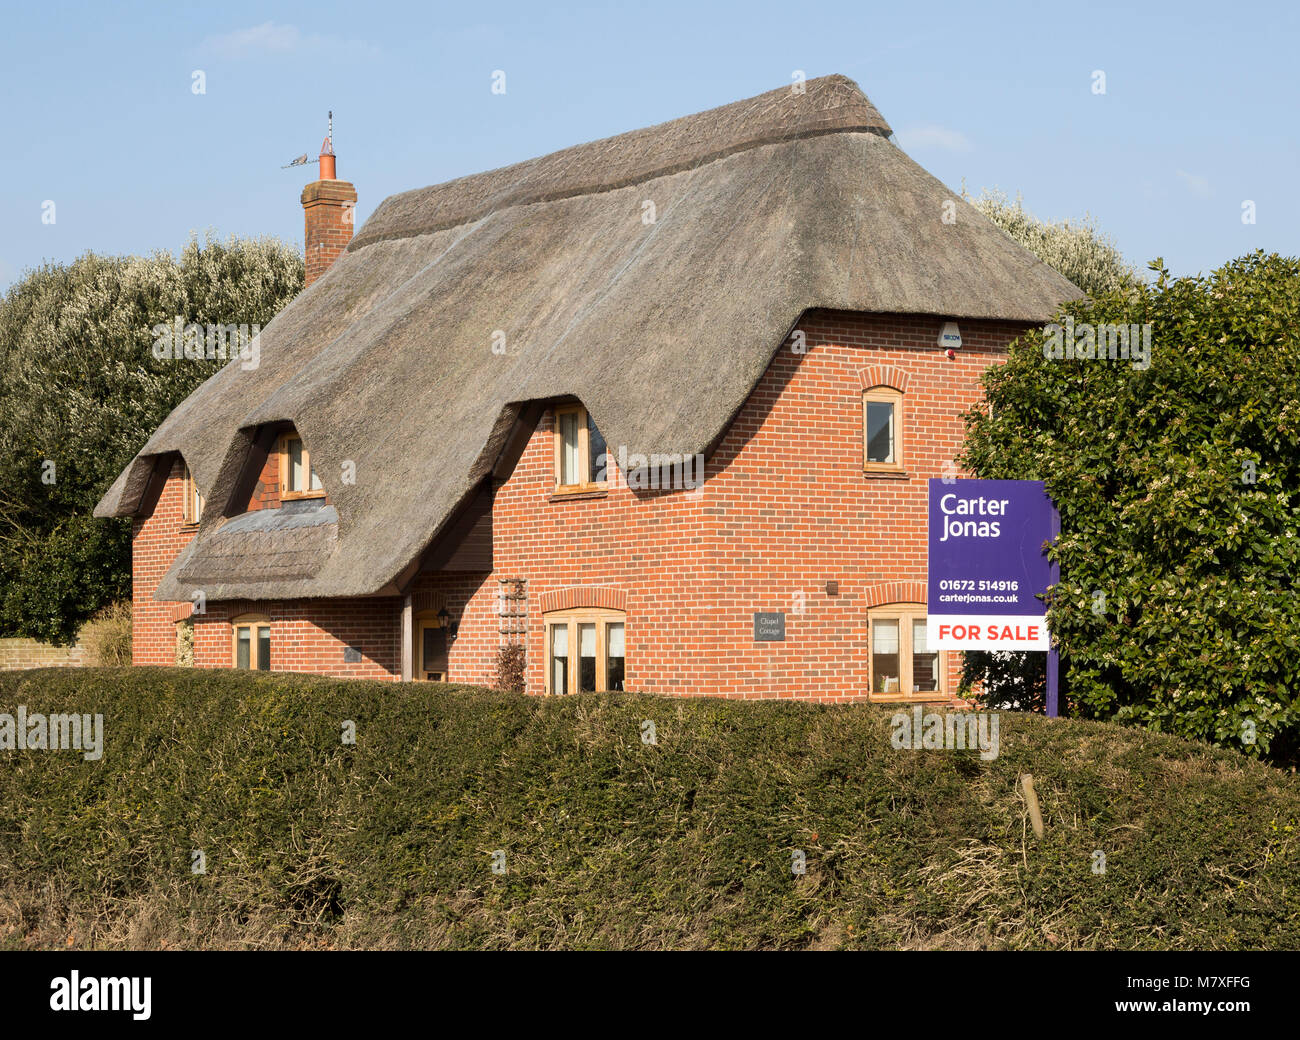 Thatched country cottage for sale with Carter Jonas estate agent sign outside,  Alton Priors, Wiltshire, England, Stock Photo